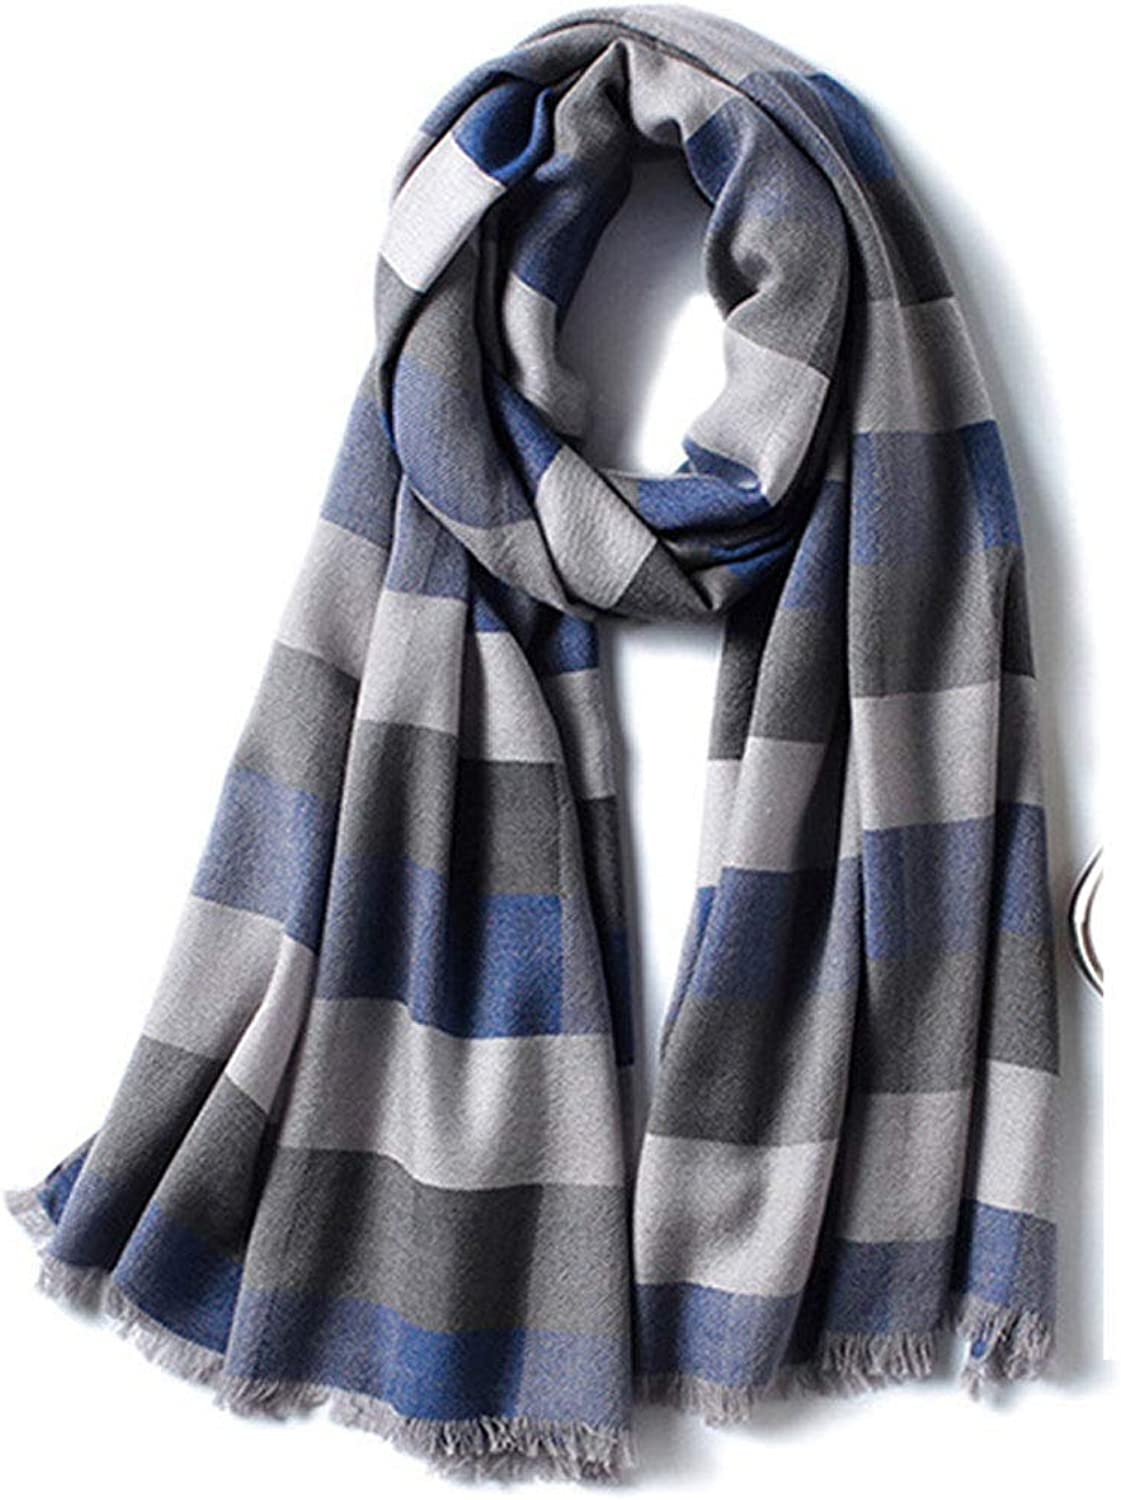 HUIFANG Wool Scarf Winter Korean Plaid Shawl Wild Unisex Long Section Warm Student Collar Green bluee Brown 70  180CM A (color   bluee, Size   70  180CM)